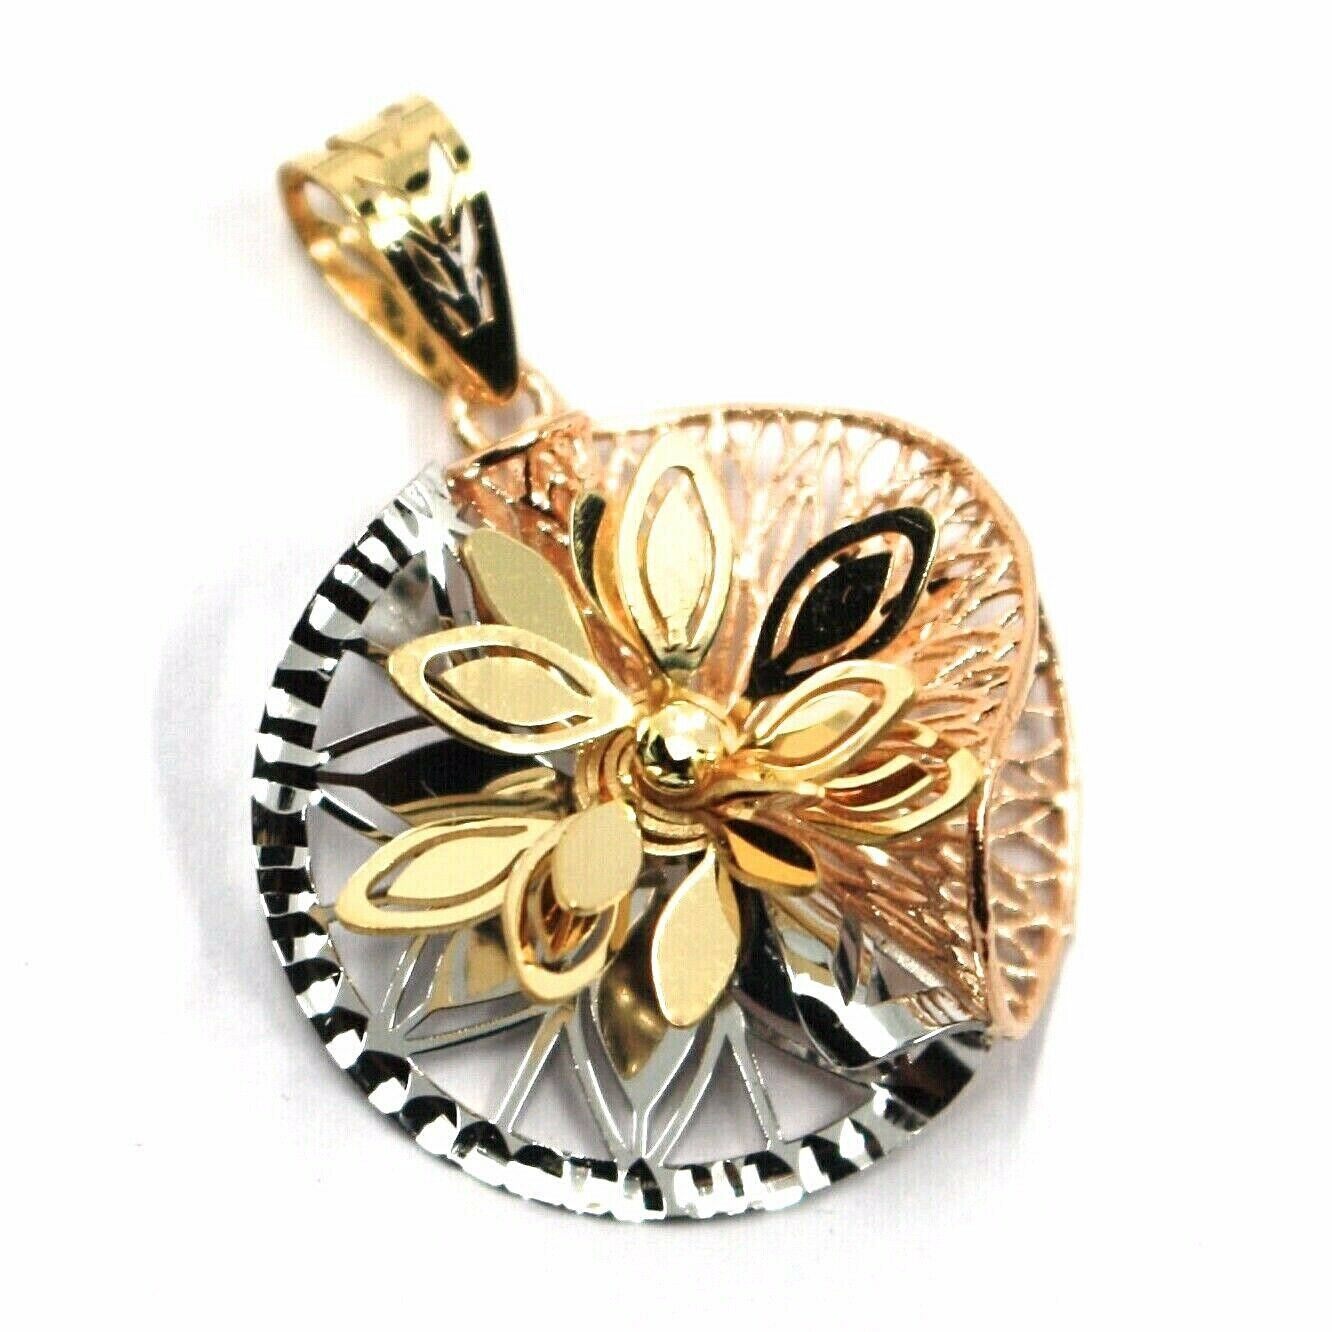 18K YELLOW WHITE ROSE GOLD FLOWER, ONDULATE, FINELY WORKED PETALS 2.2cm PENDANT